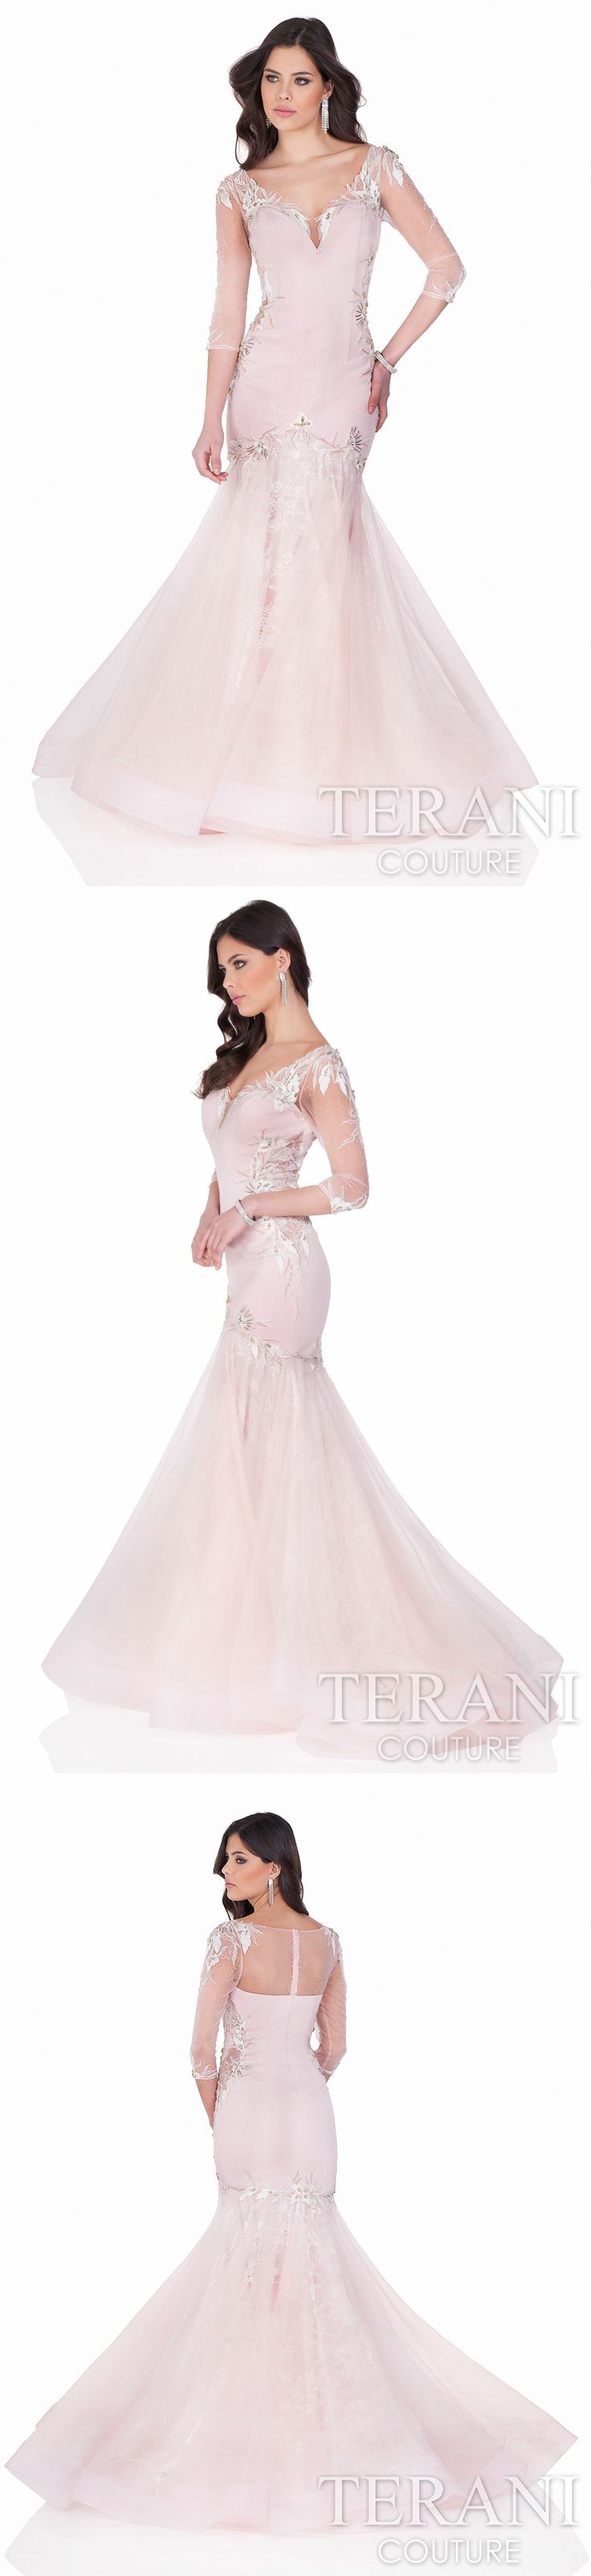 65 best Terani Couture images on Pinterest | Ballroom dress, Party ...